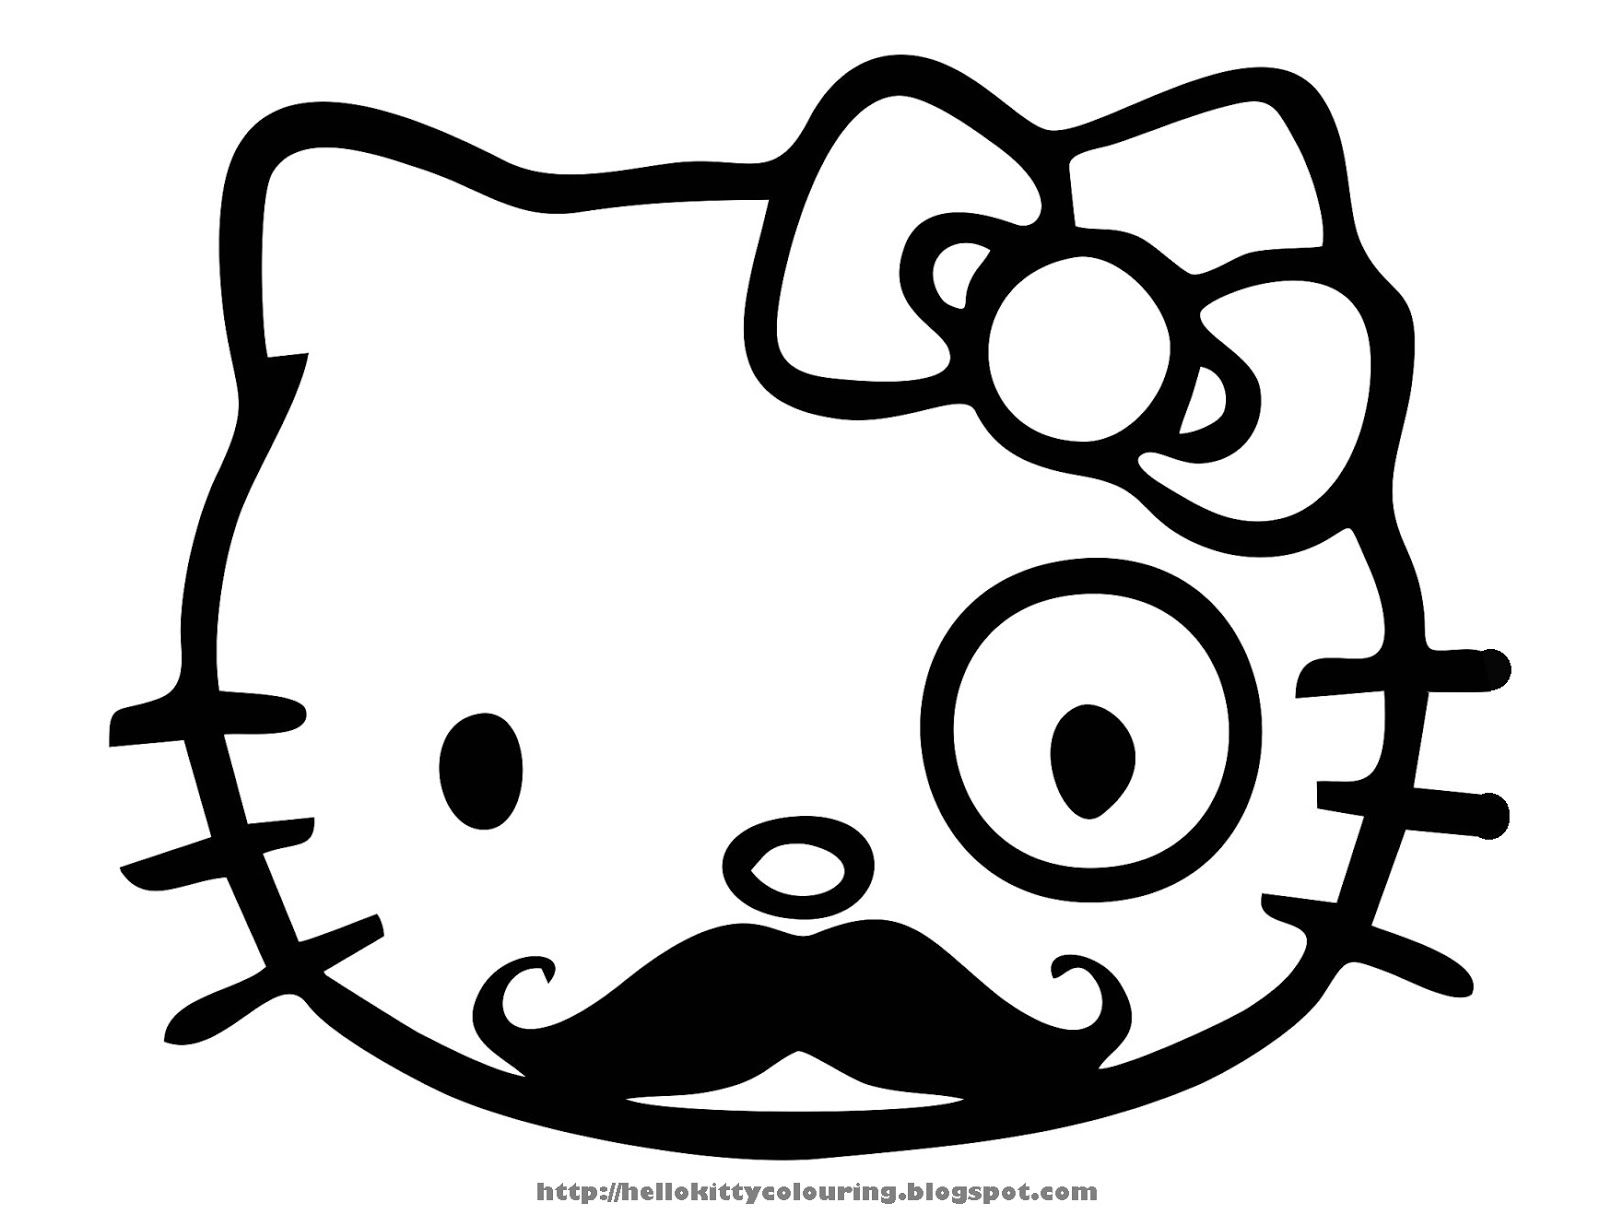 As With Most Of The Other Hello Kitty Coloring Pages The